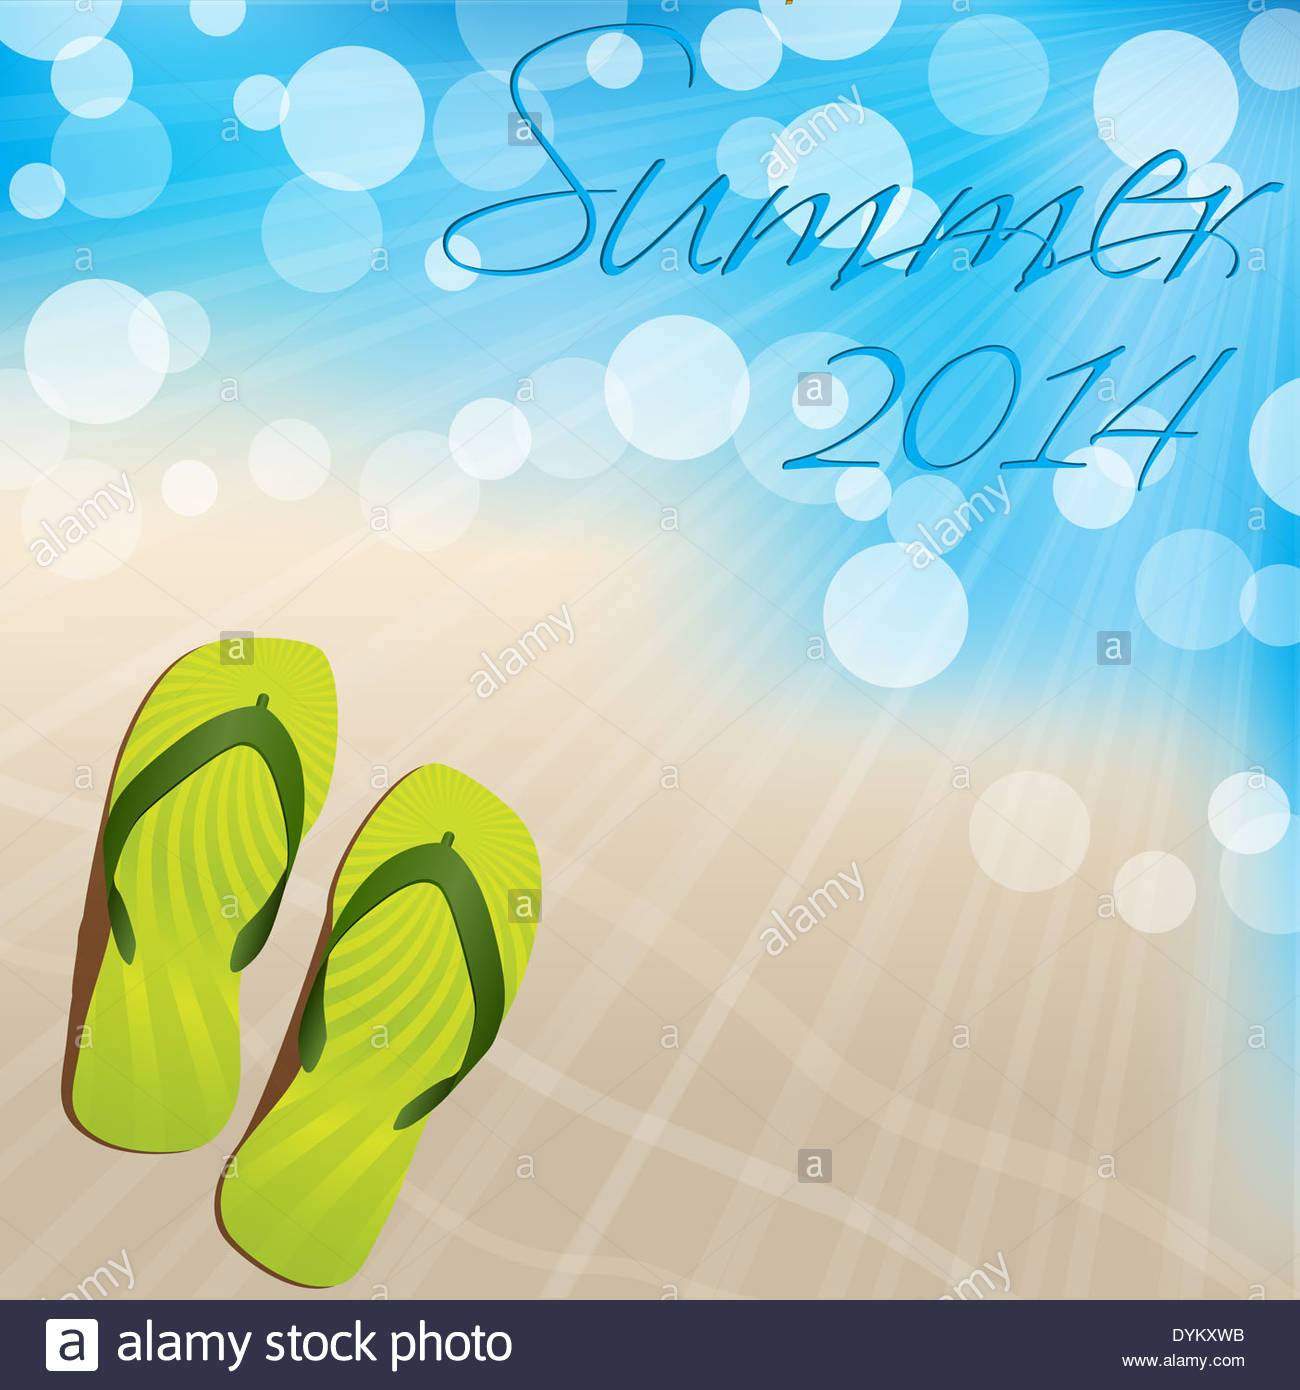 Summer Background Design With Flip Flops On Sandy Shore Stock.